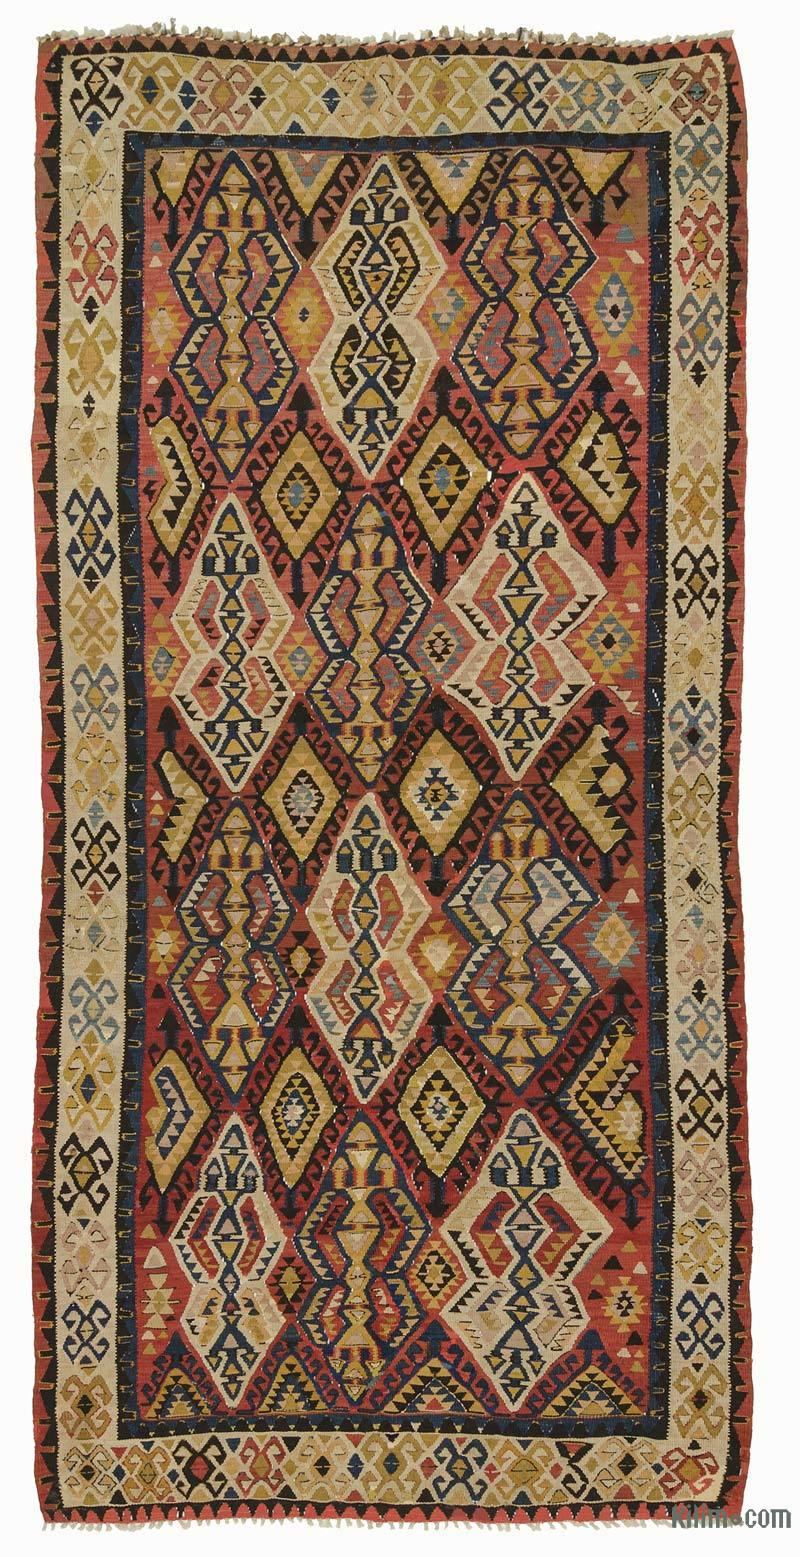 K0007939 Multicolor Antique Avar Kilim Rug